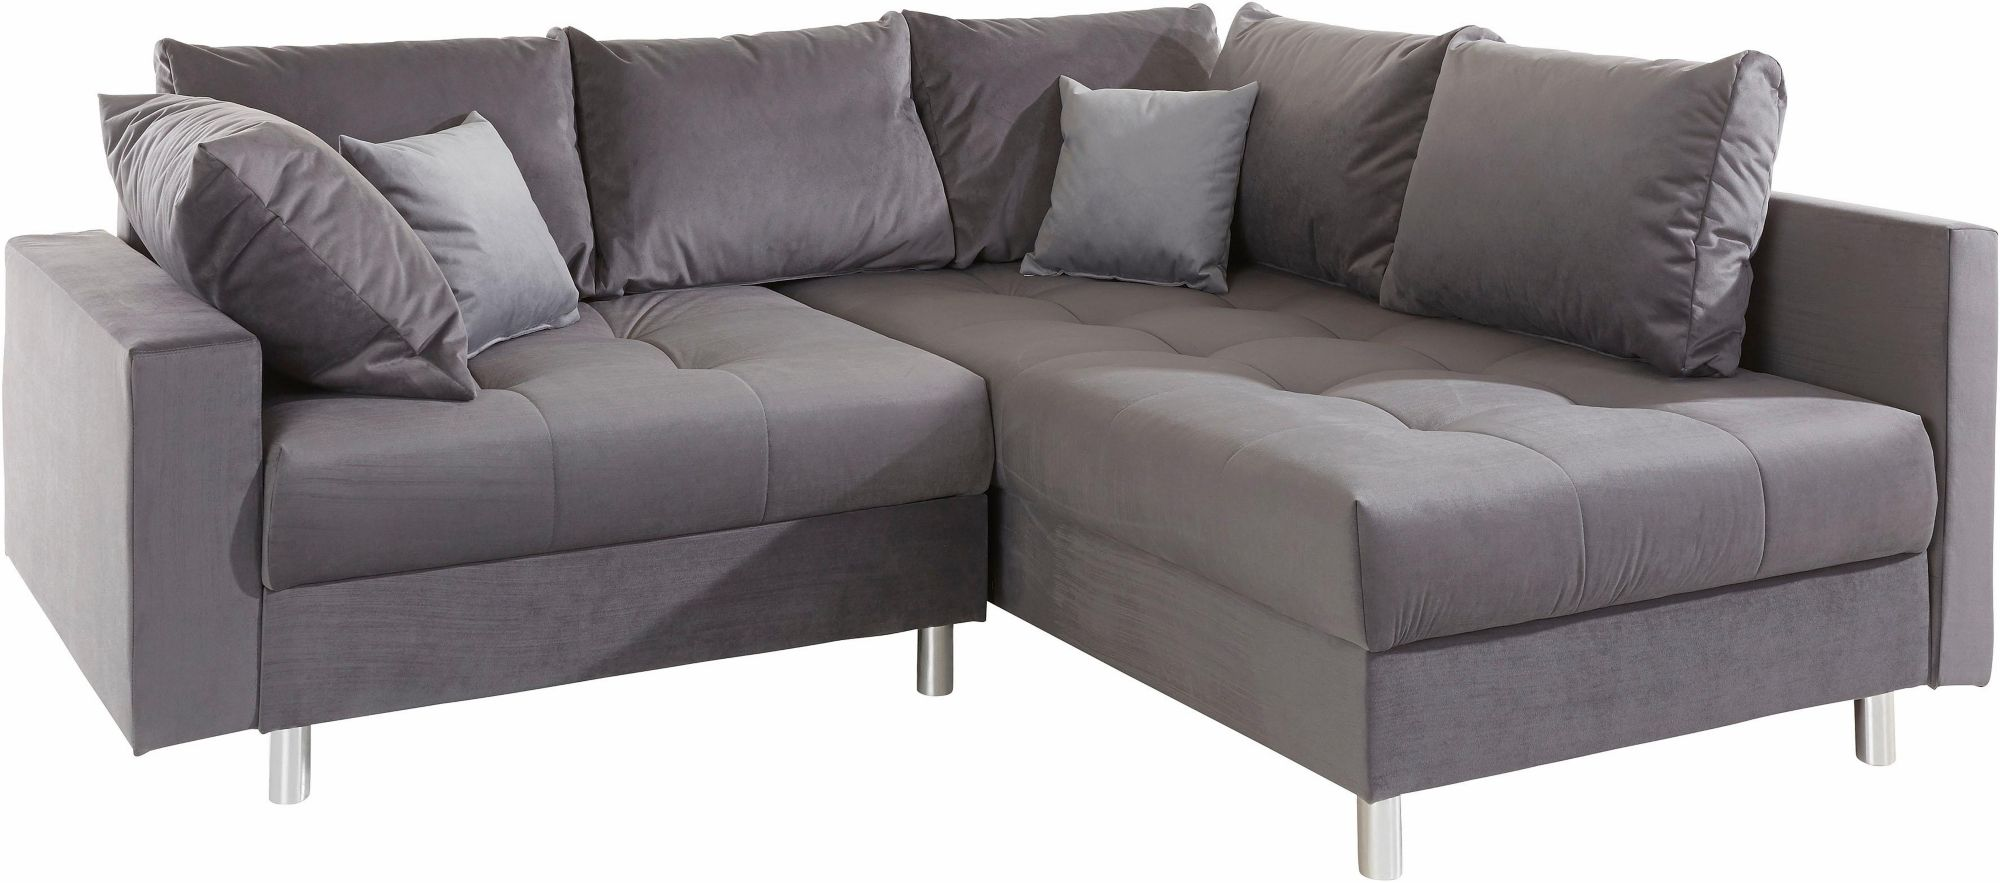 COLLECTION AB Collection AB Polsterecke, inklusive Hocker